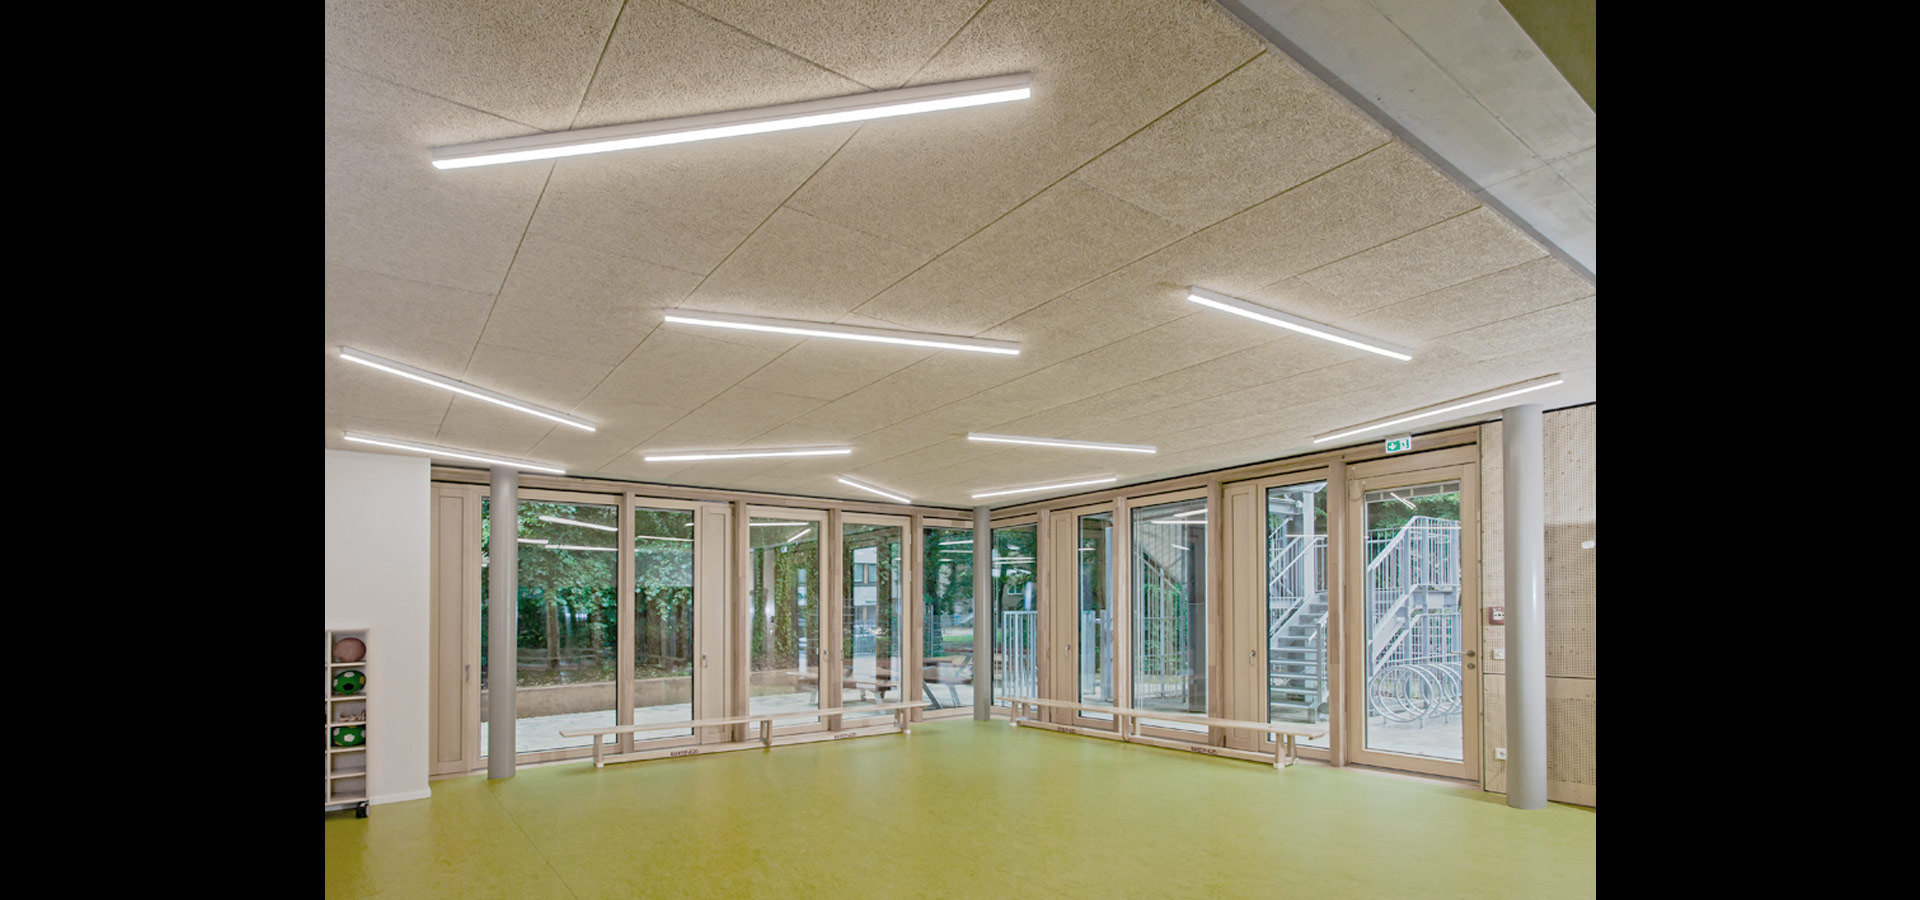 Flurbeleuchtung Led Led Lighting With Light Band For Daycare Centre By Luxsystem